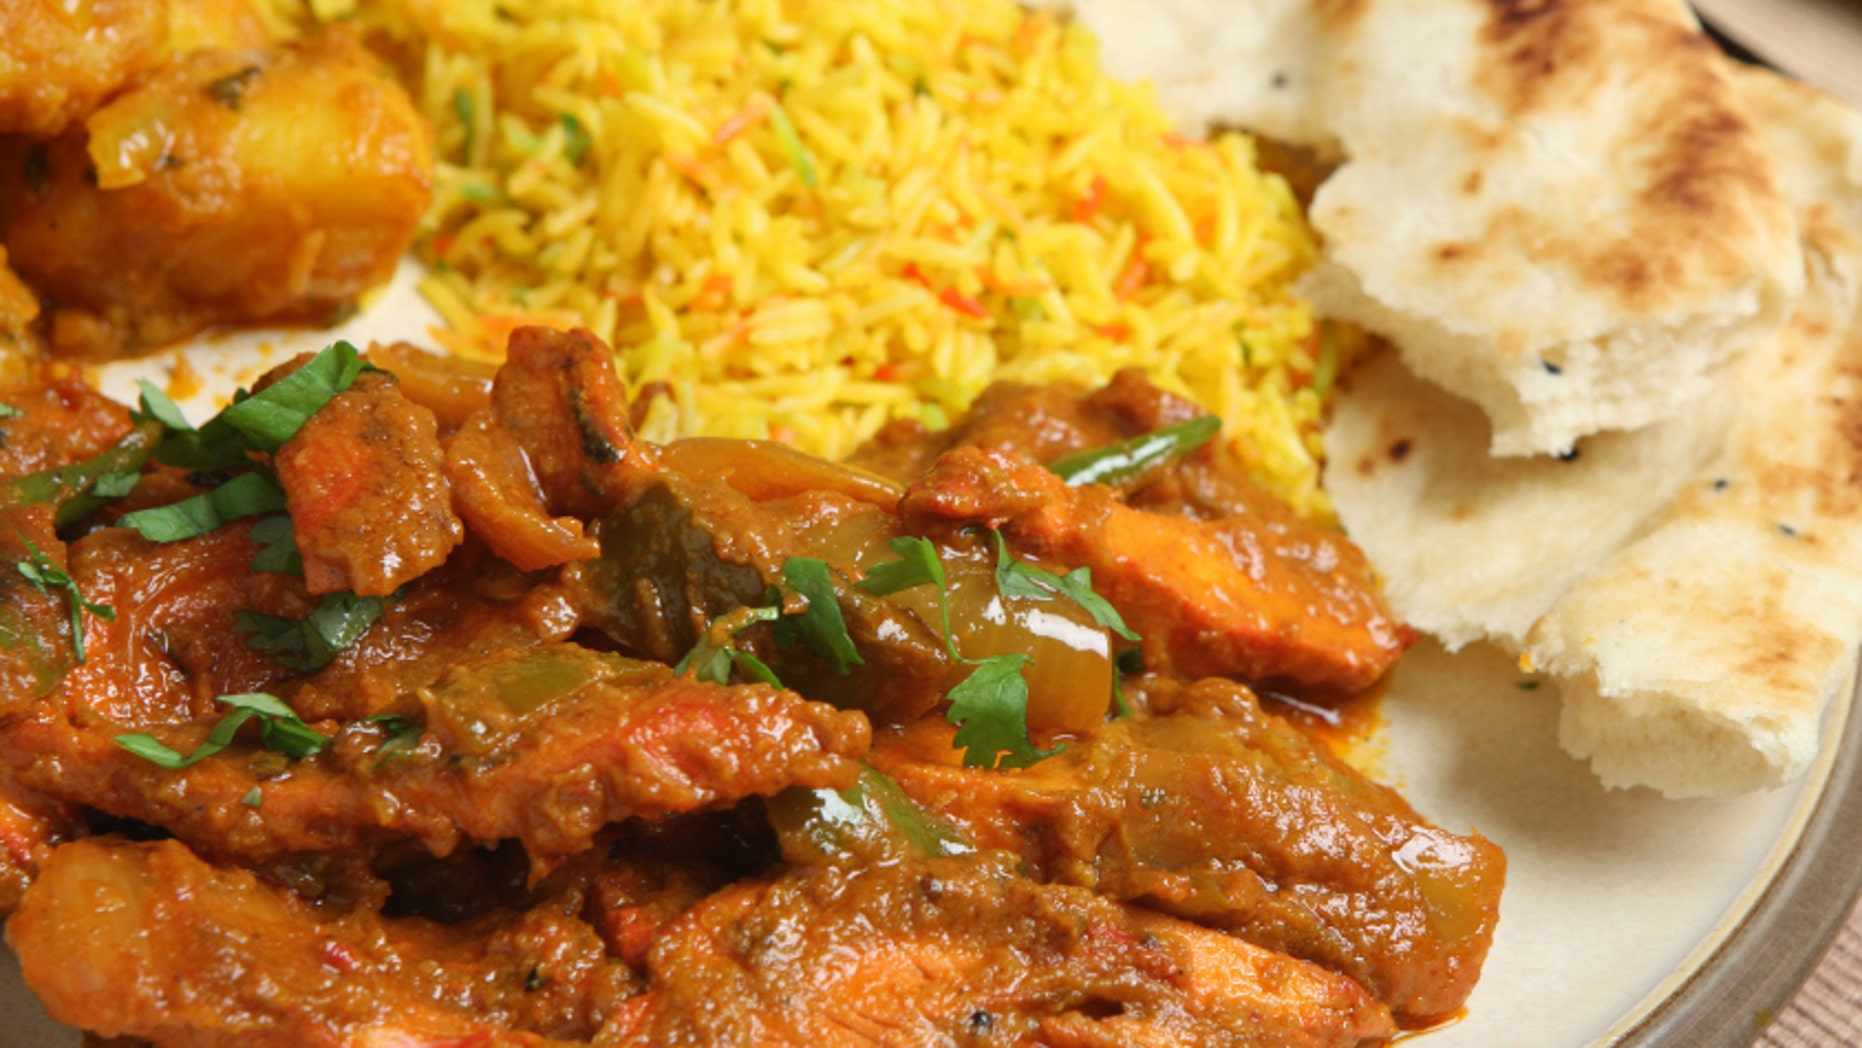 Indian chicken jalfrezi with Bombay aloo, pilau rice and naan bread.